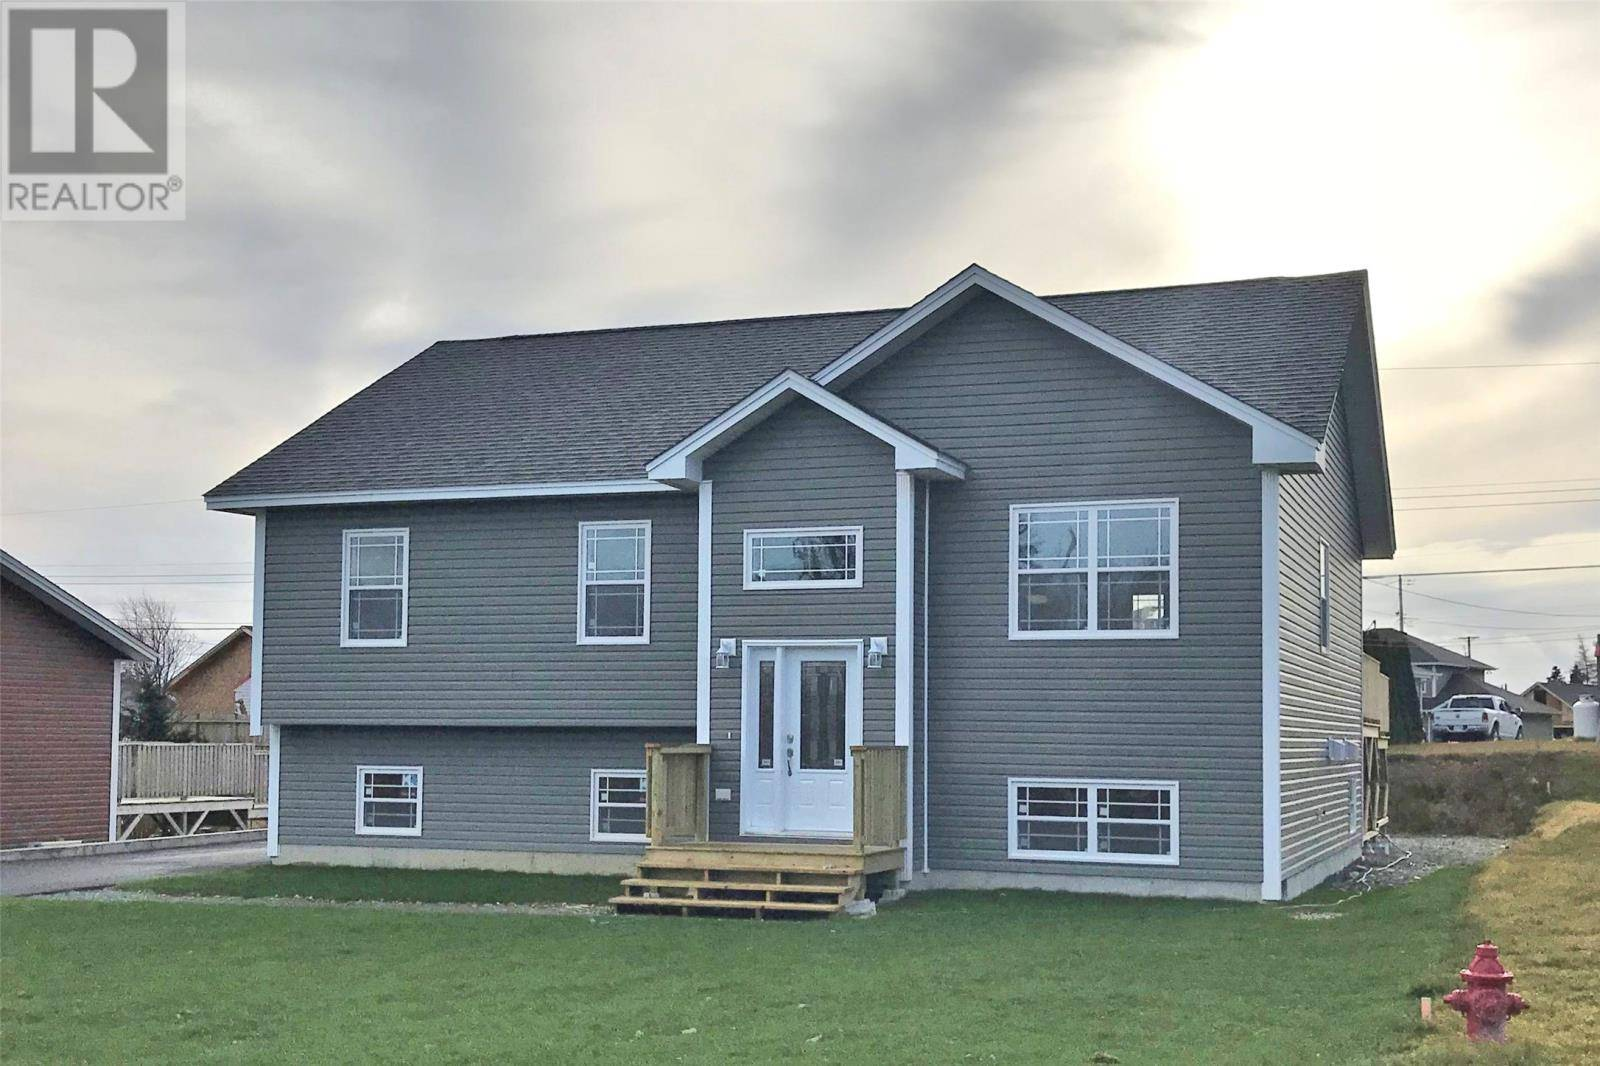 House for sale at 9 Shea Pl Bay Roberts Newfoundland - MLS: 1212361